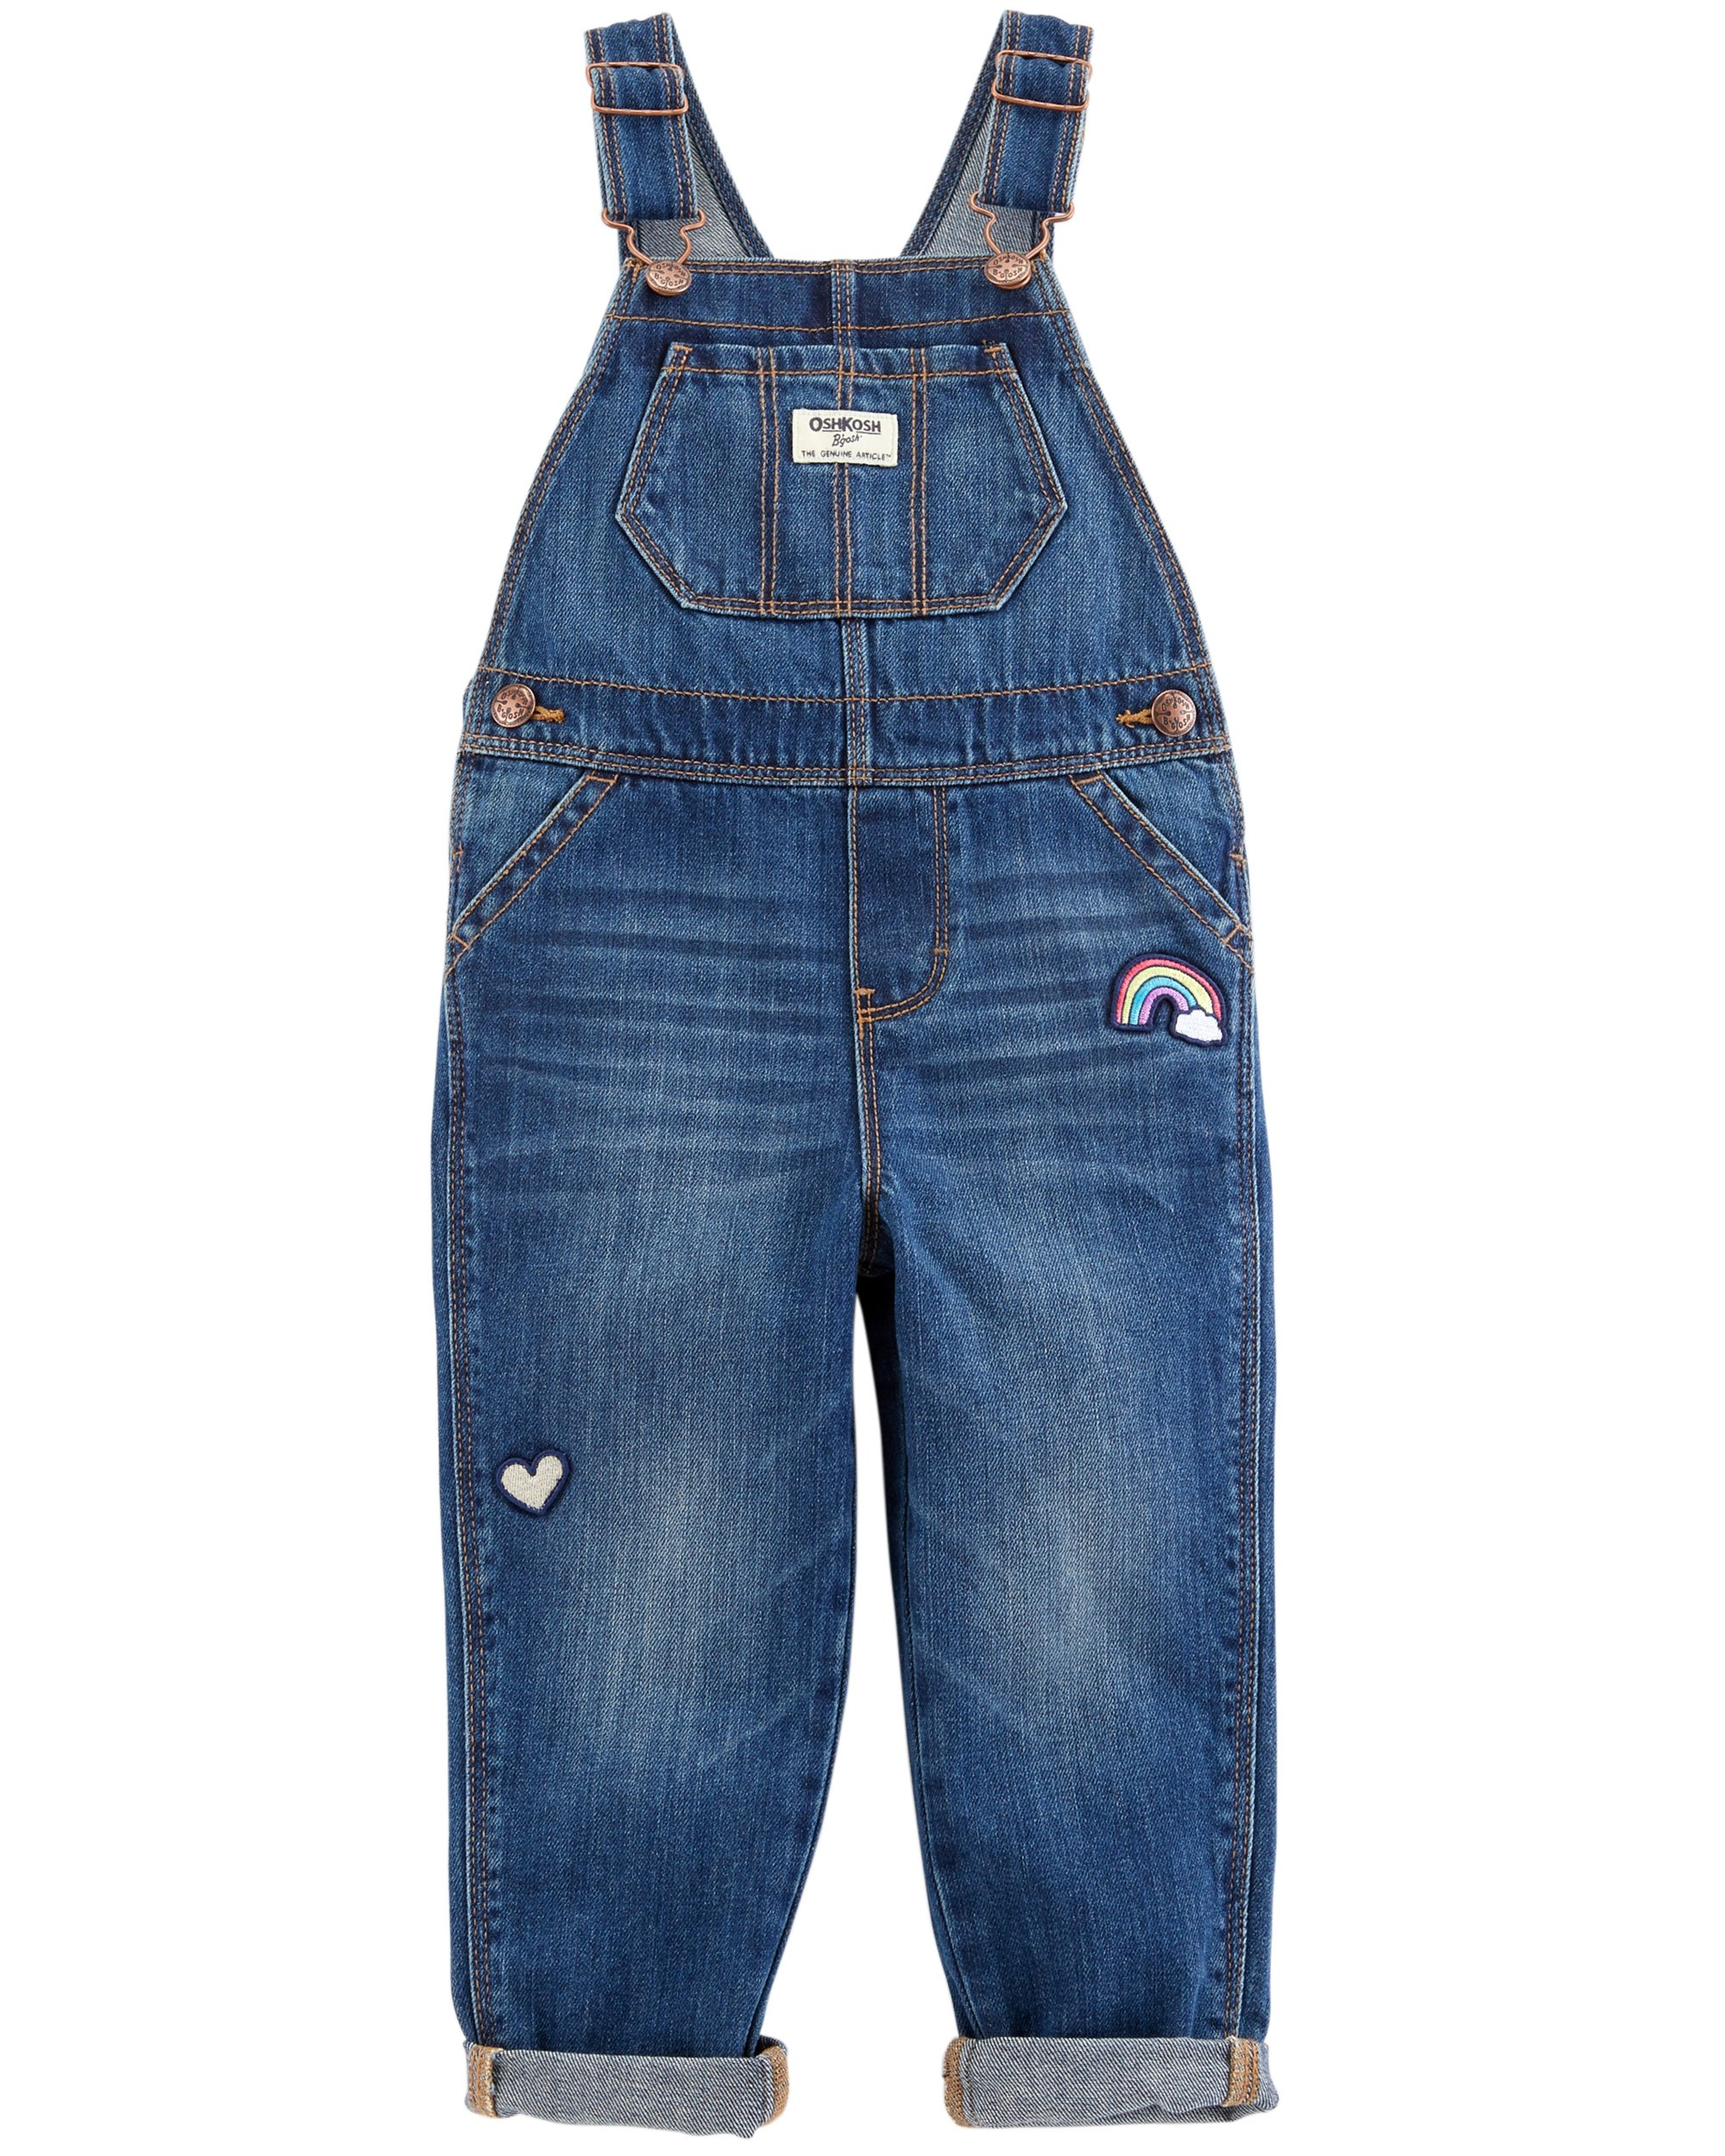 Osh Kosh Girls' Toddler World's Best Overalls, Medium Wash, 4T